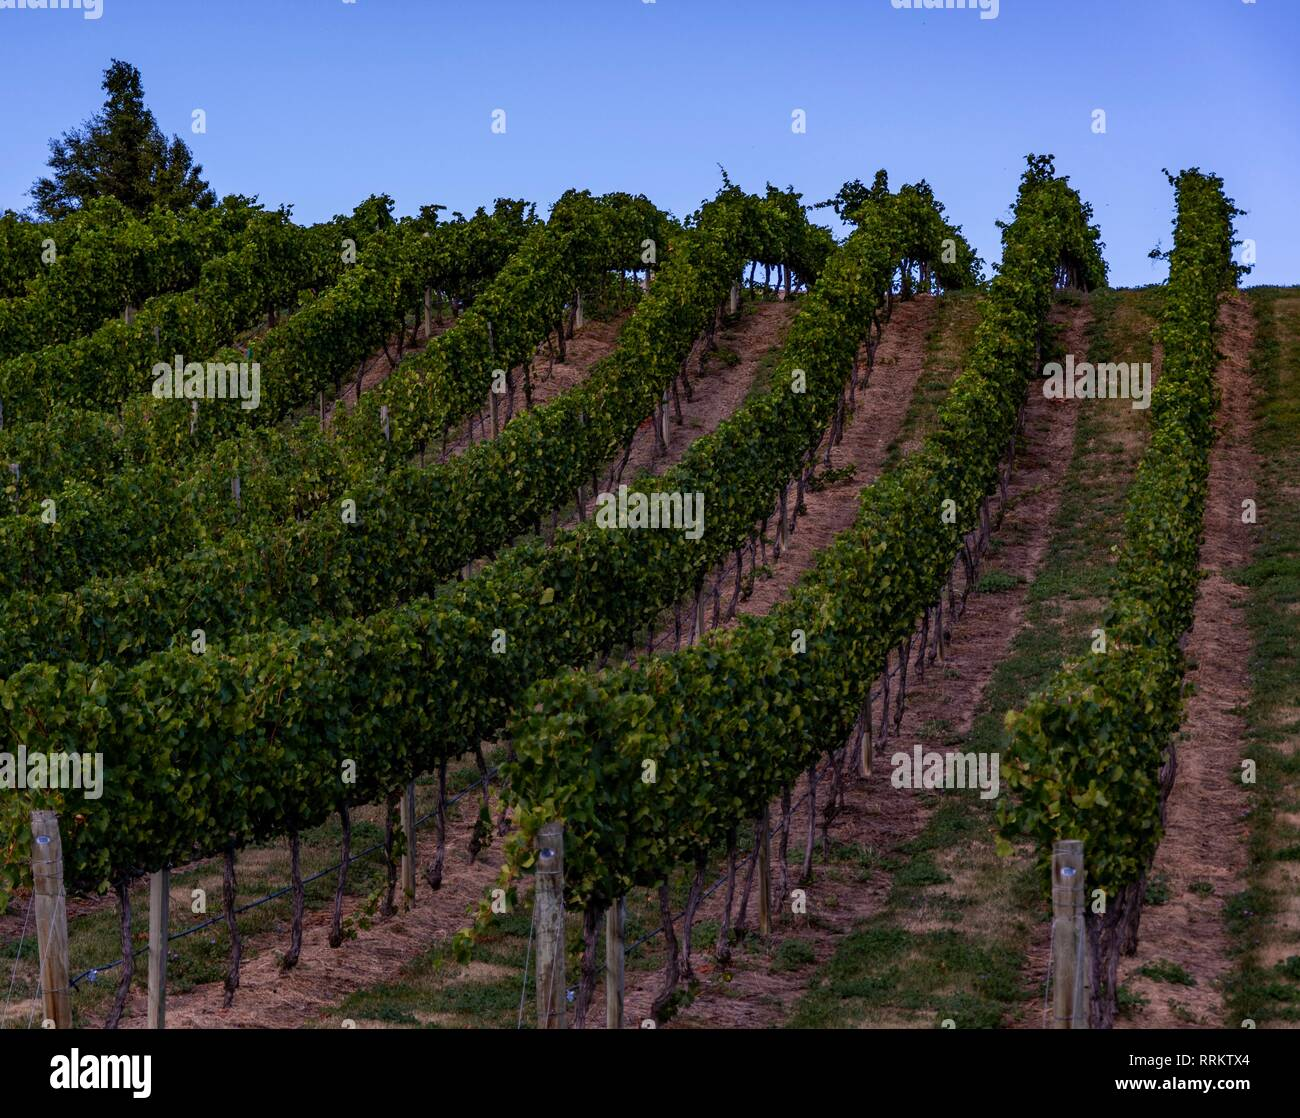 Vineyards in Central Otago, New Zealand, against blue sky - Stock Image